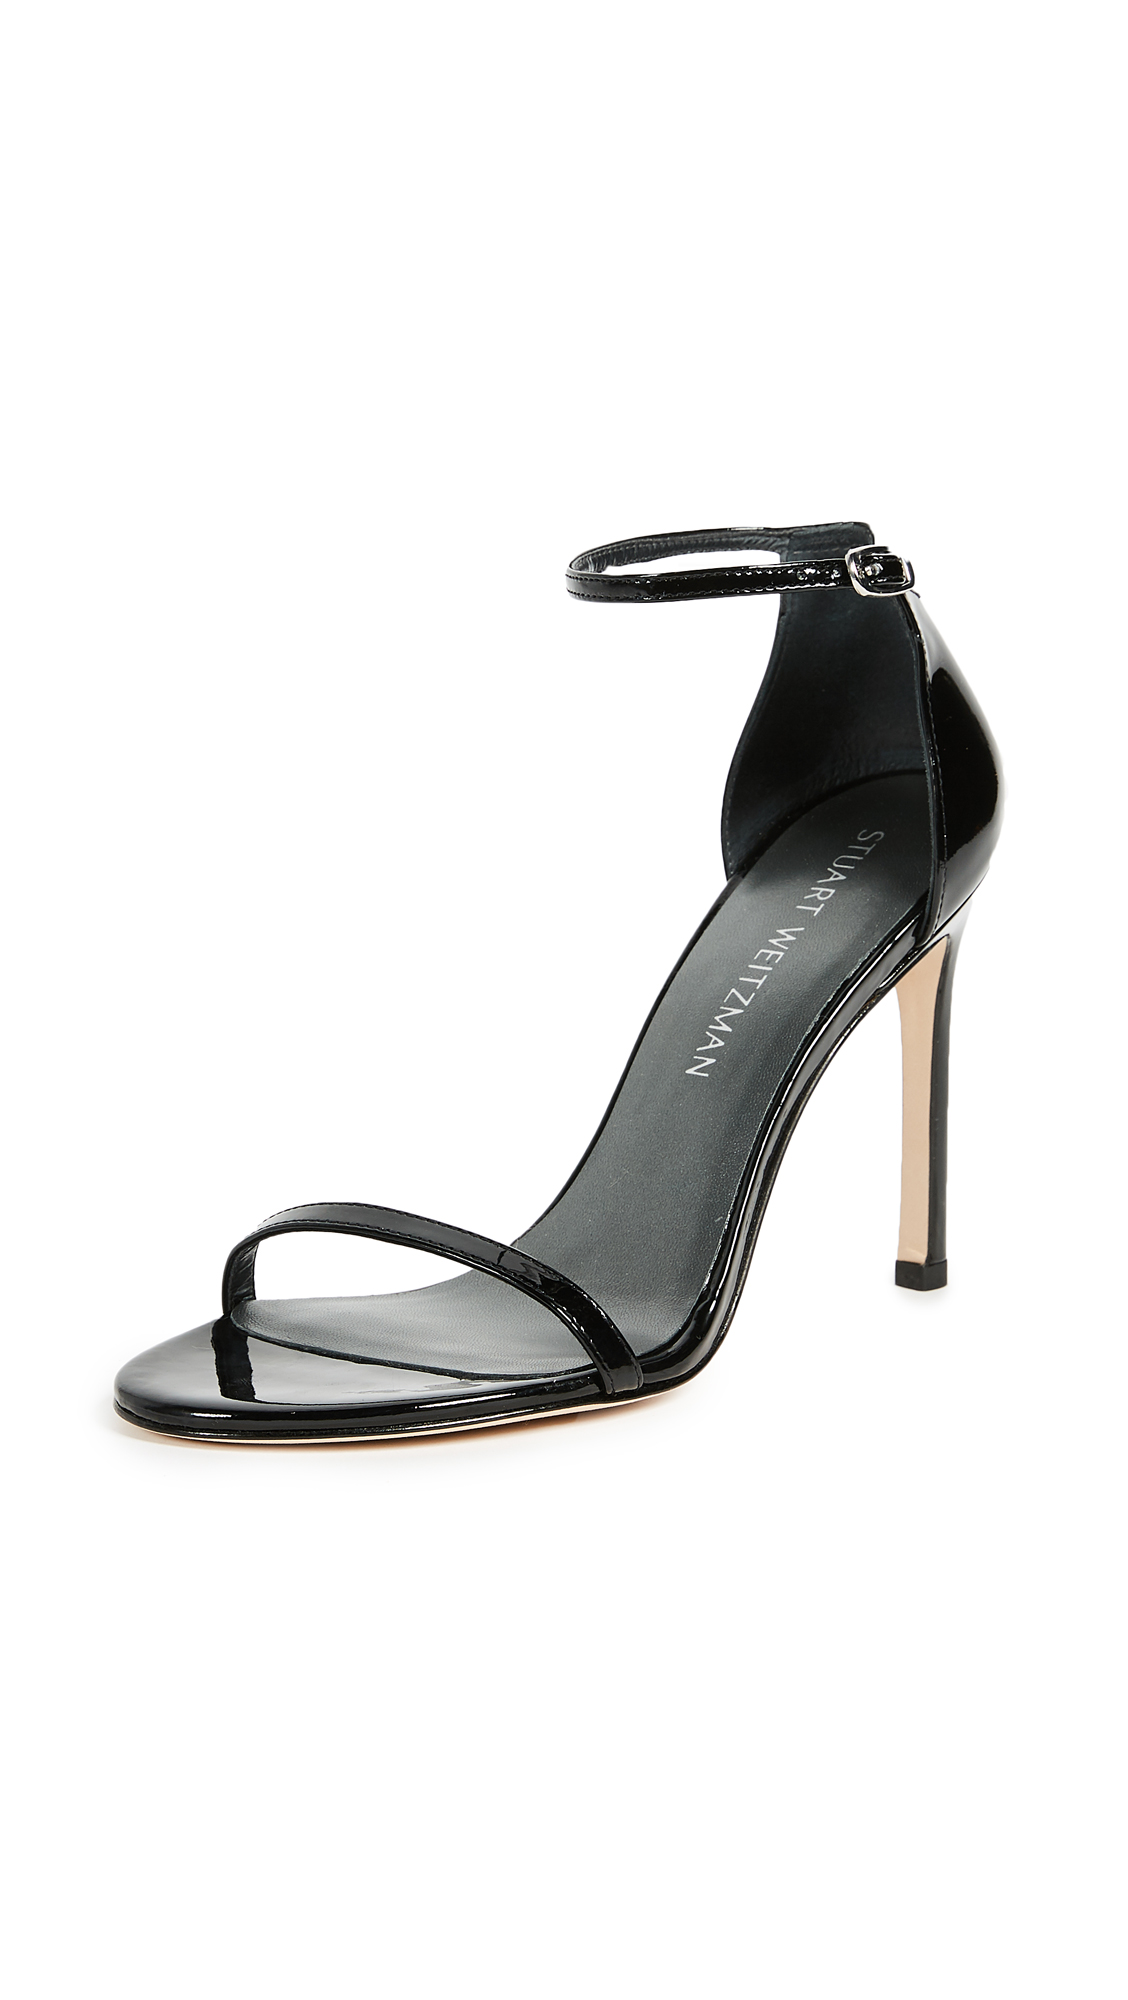 Stuart Weitzman Nudistsong 90mm Sandals - Black